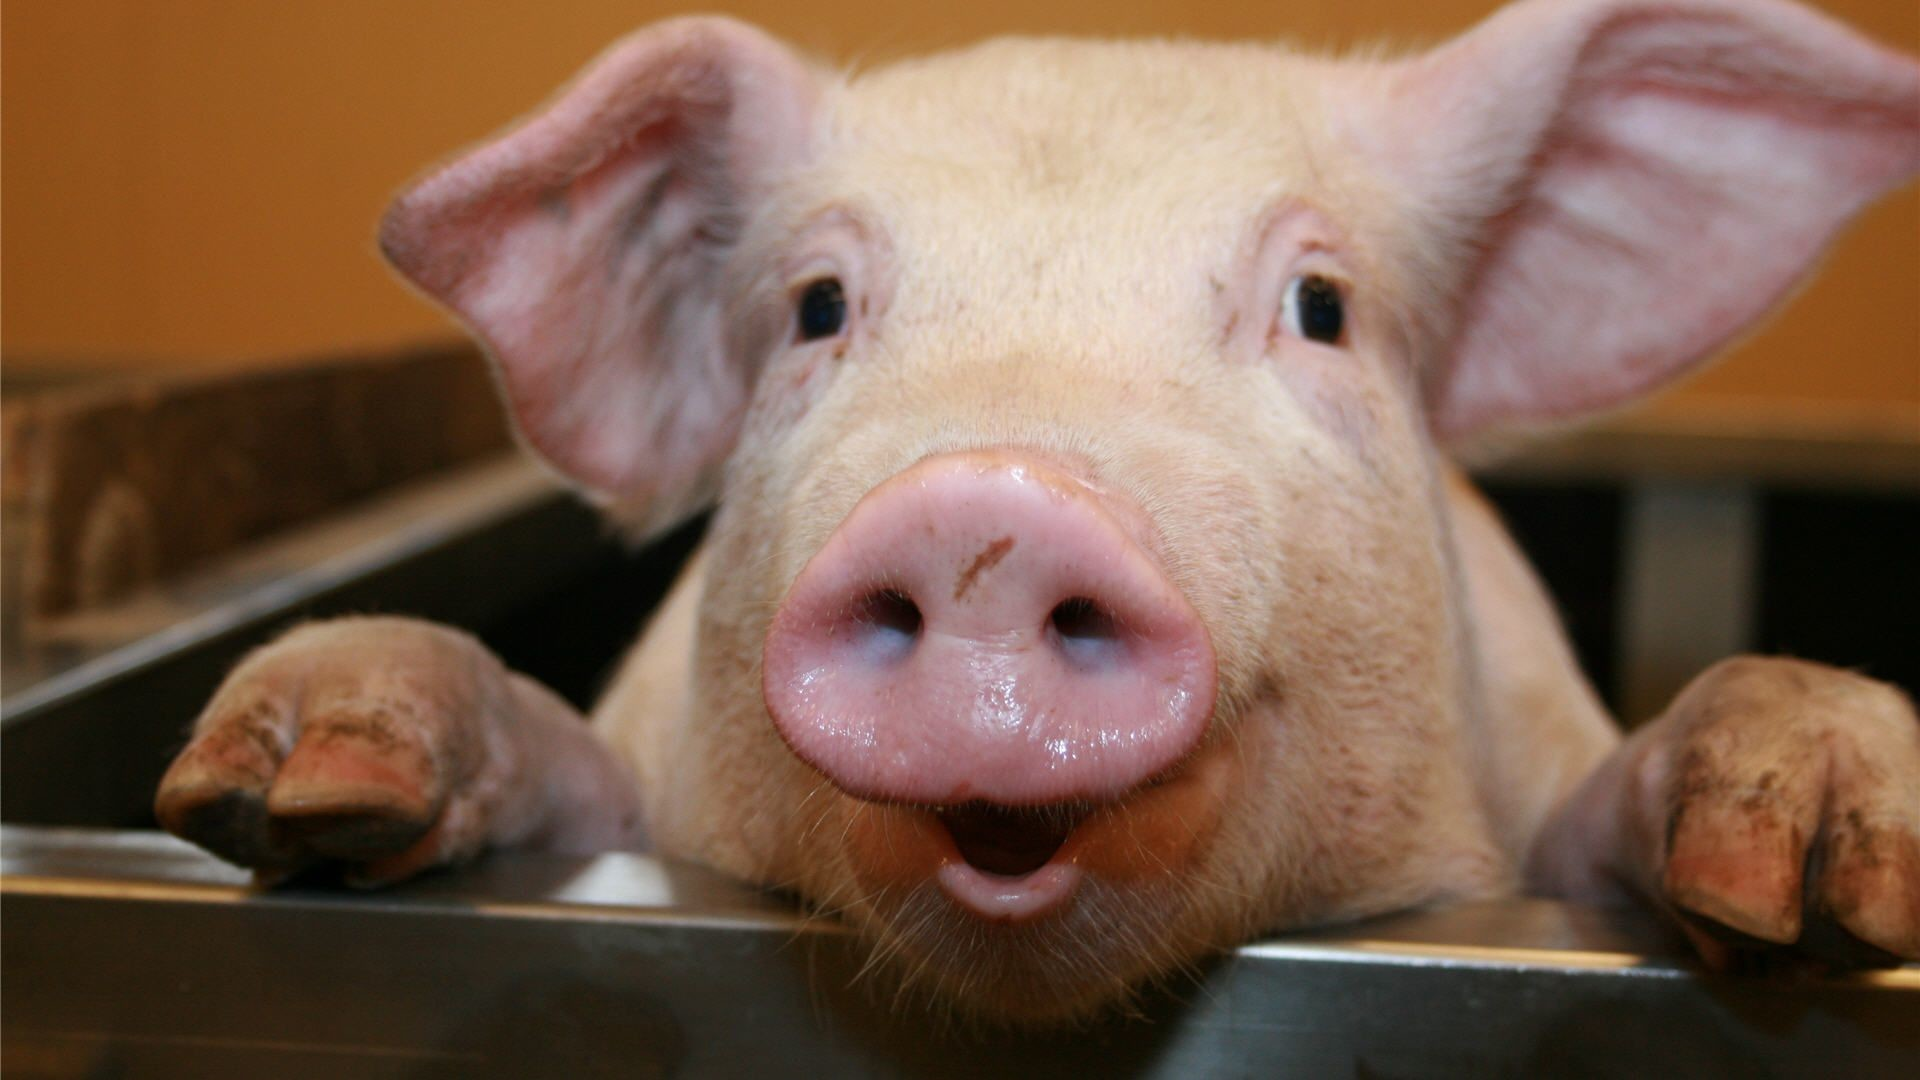 … funny pig wallpaper wallpapers home …